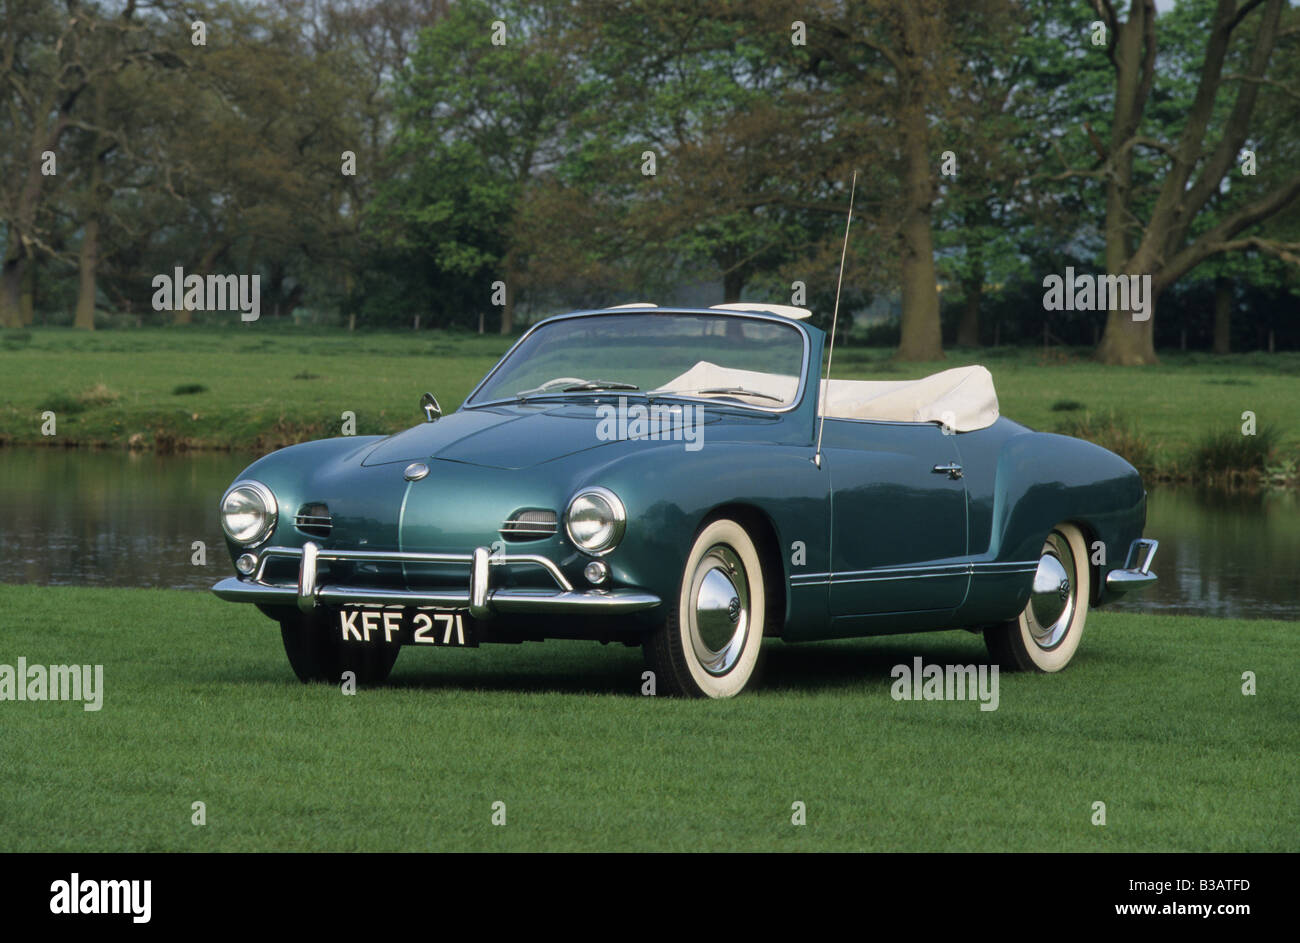 Volkswagen Karmann Ghia Convertible Of 1959 Stock Photo Alamy